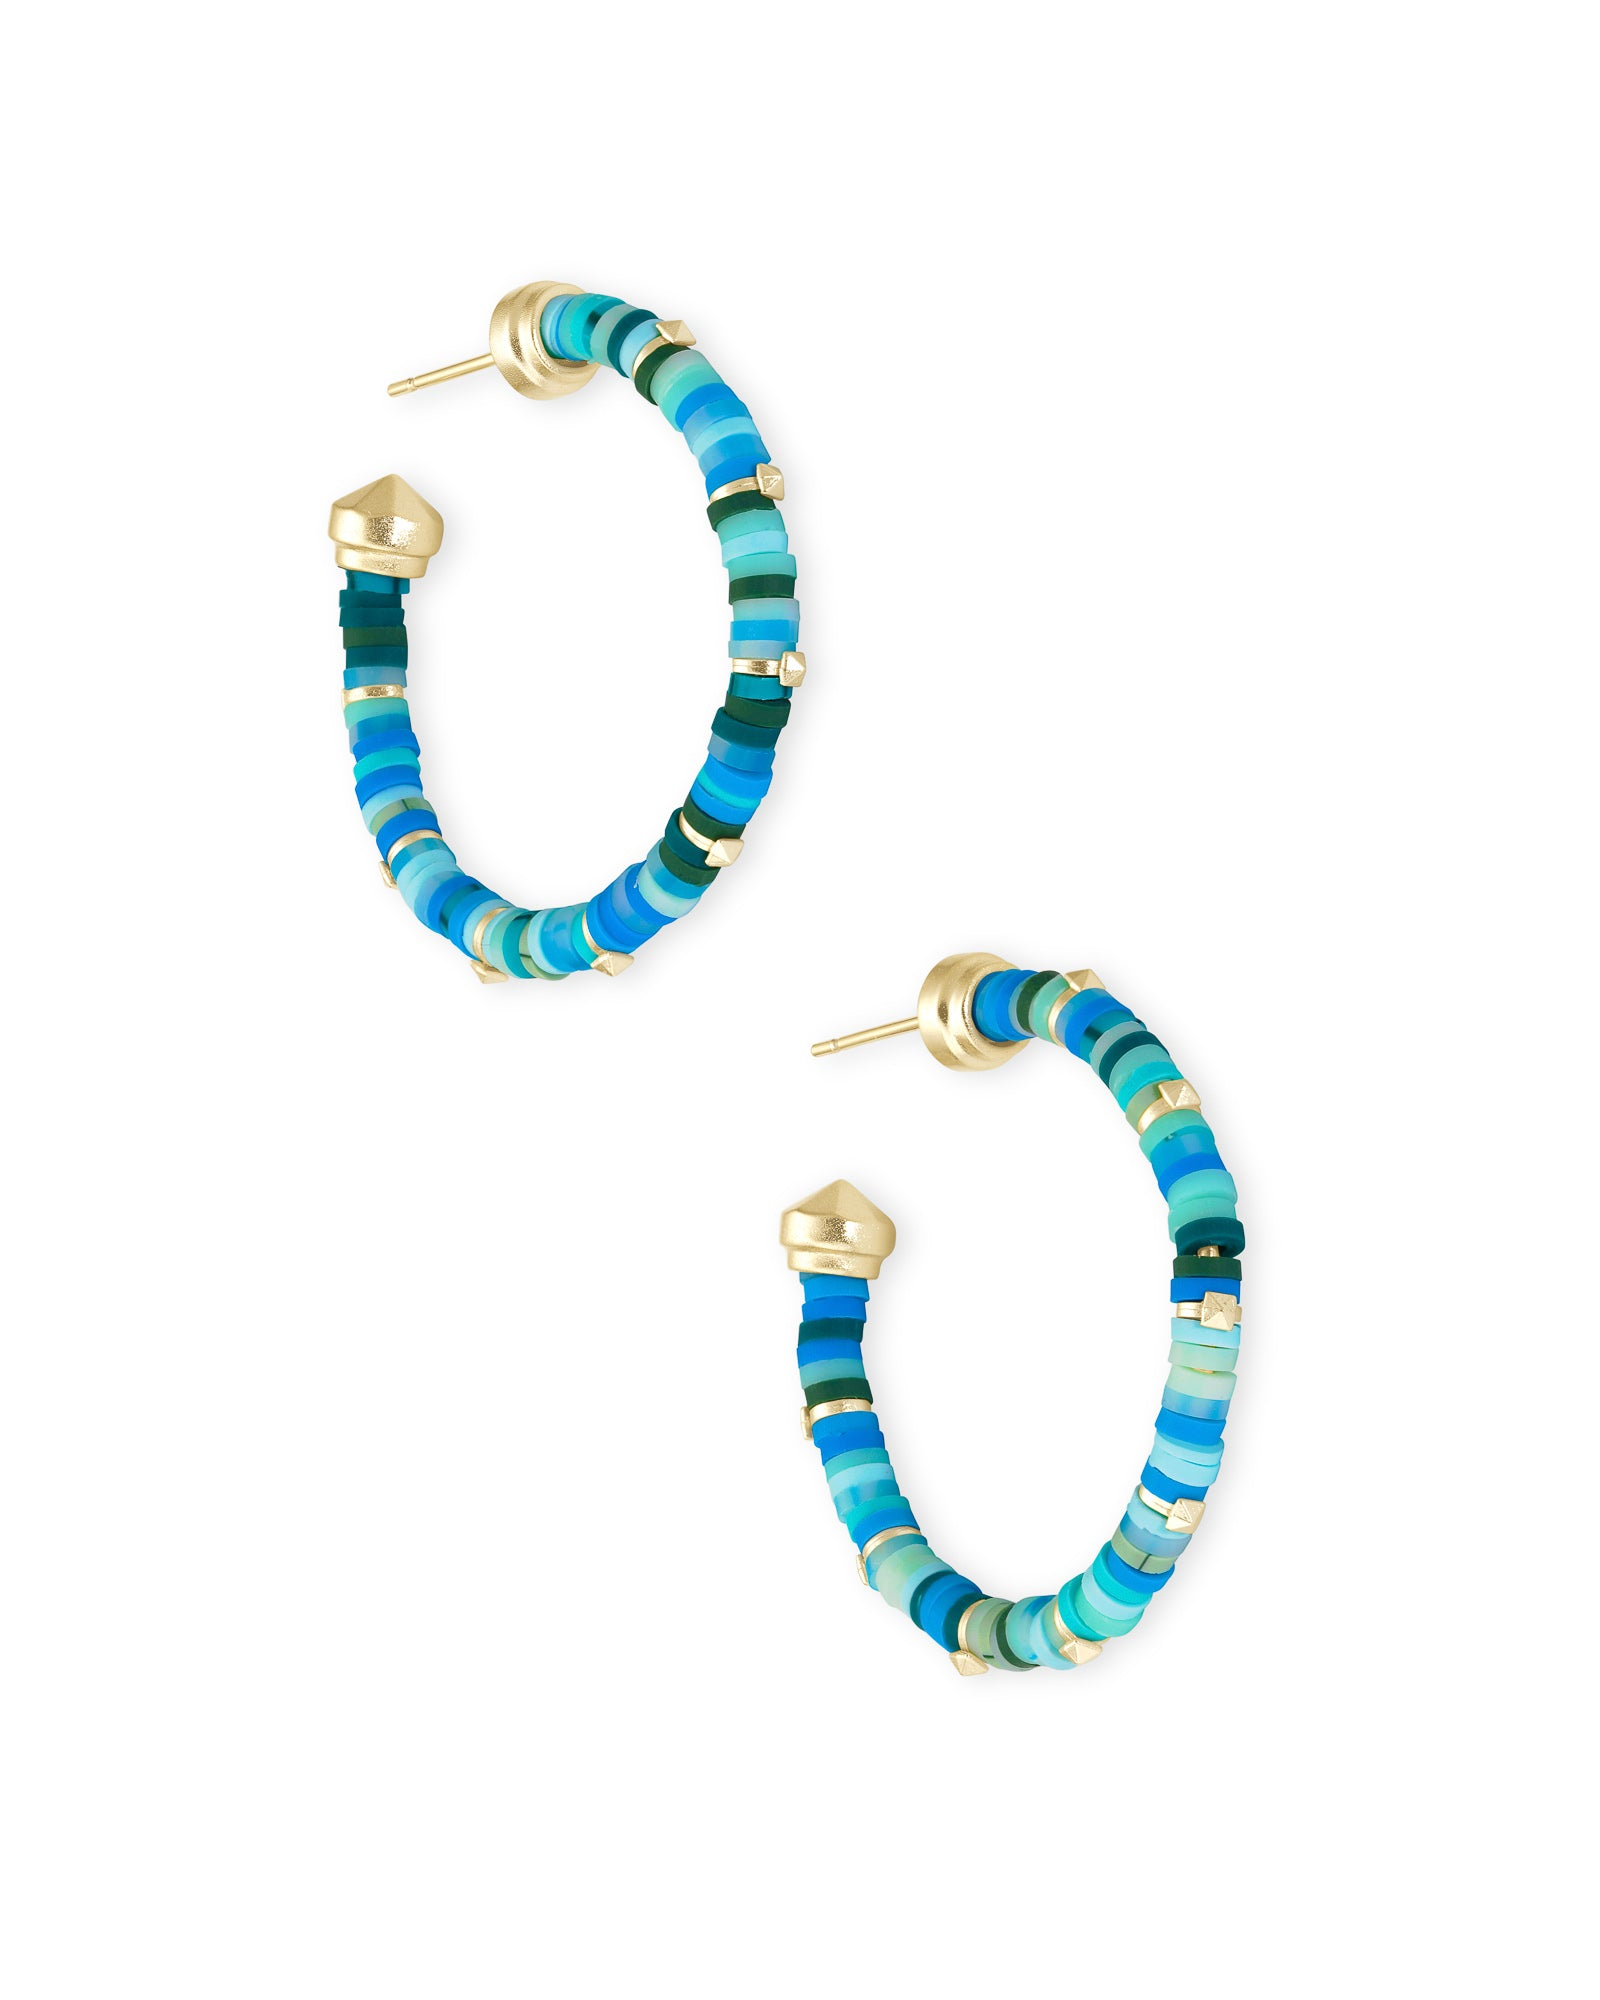 Reece Gold Small Hoop Earrings In Sea Green Mix